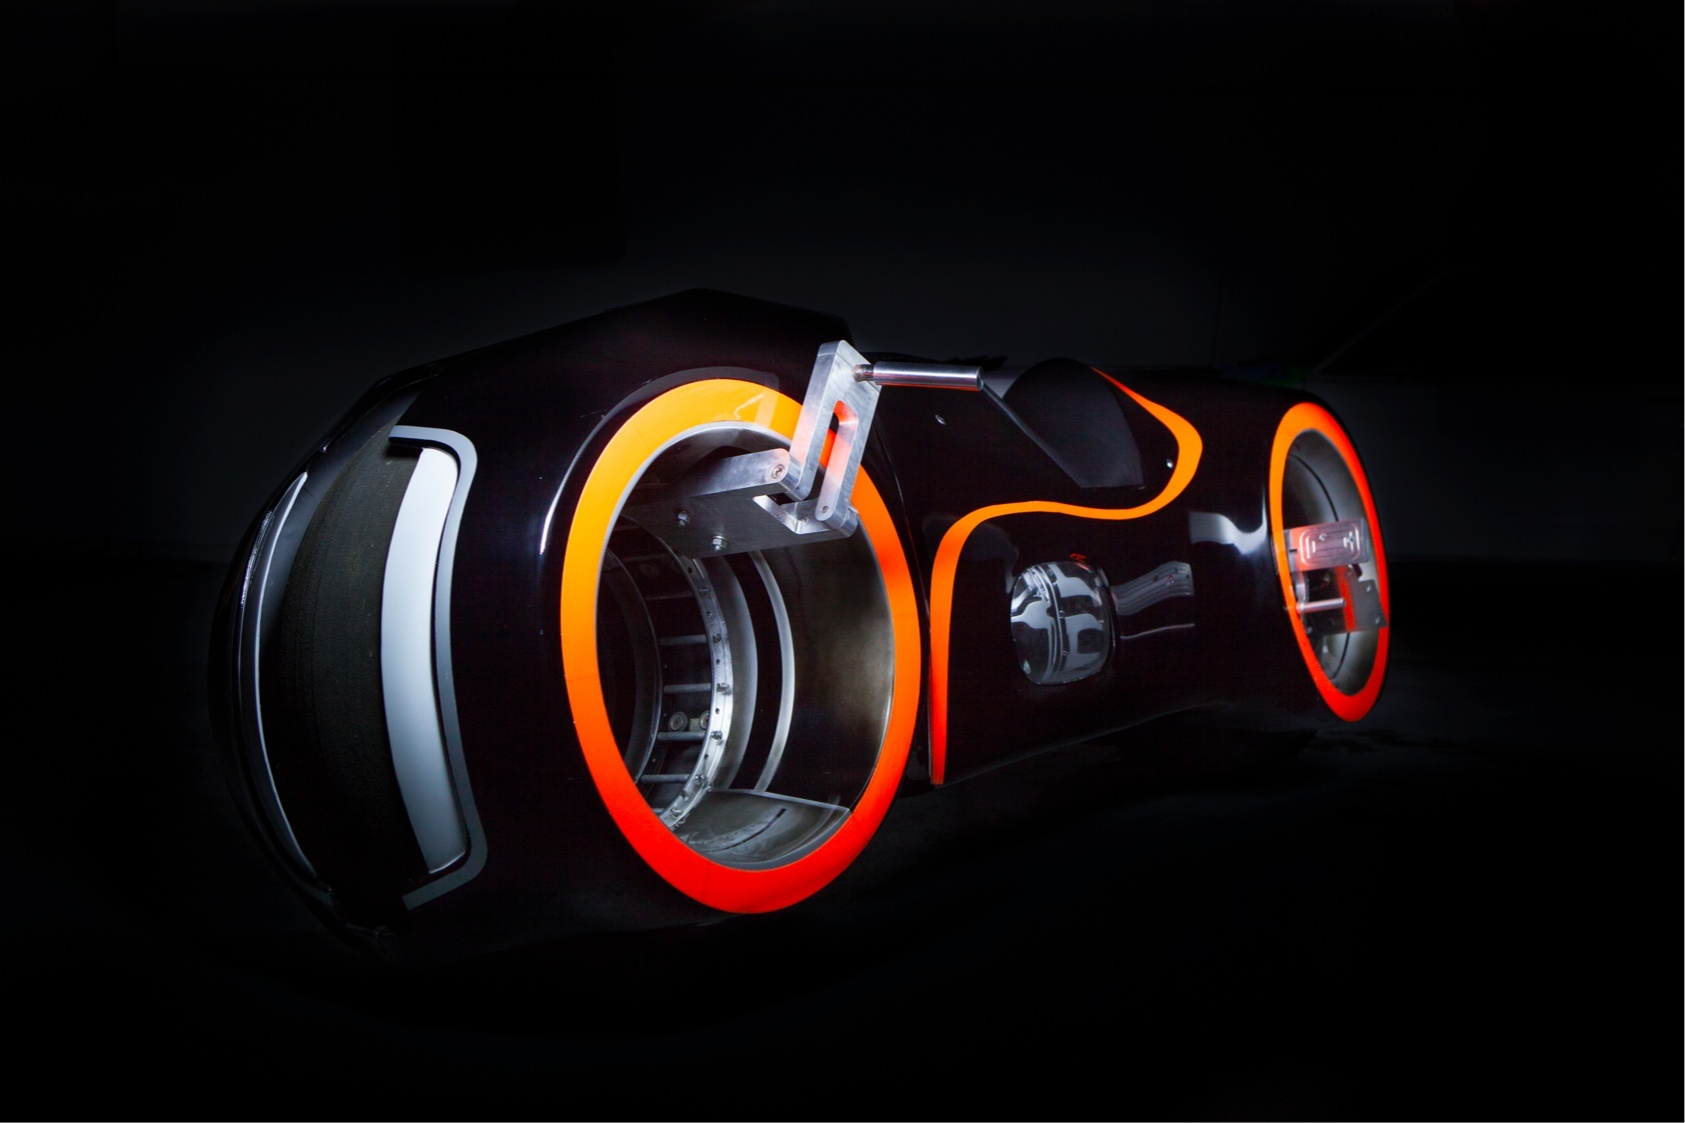 hub-less-wheel-Tron-bike-2